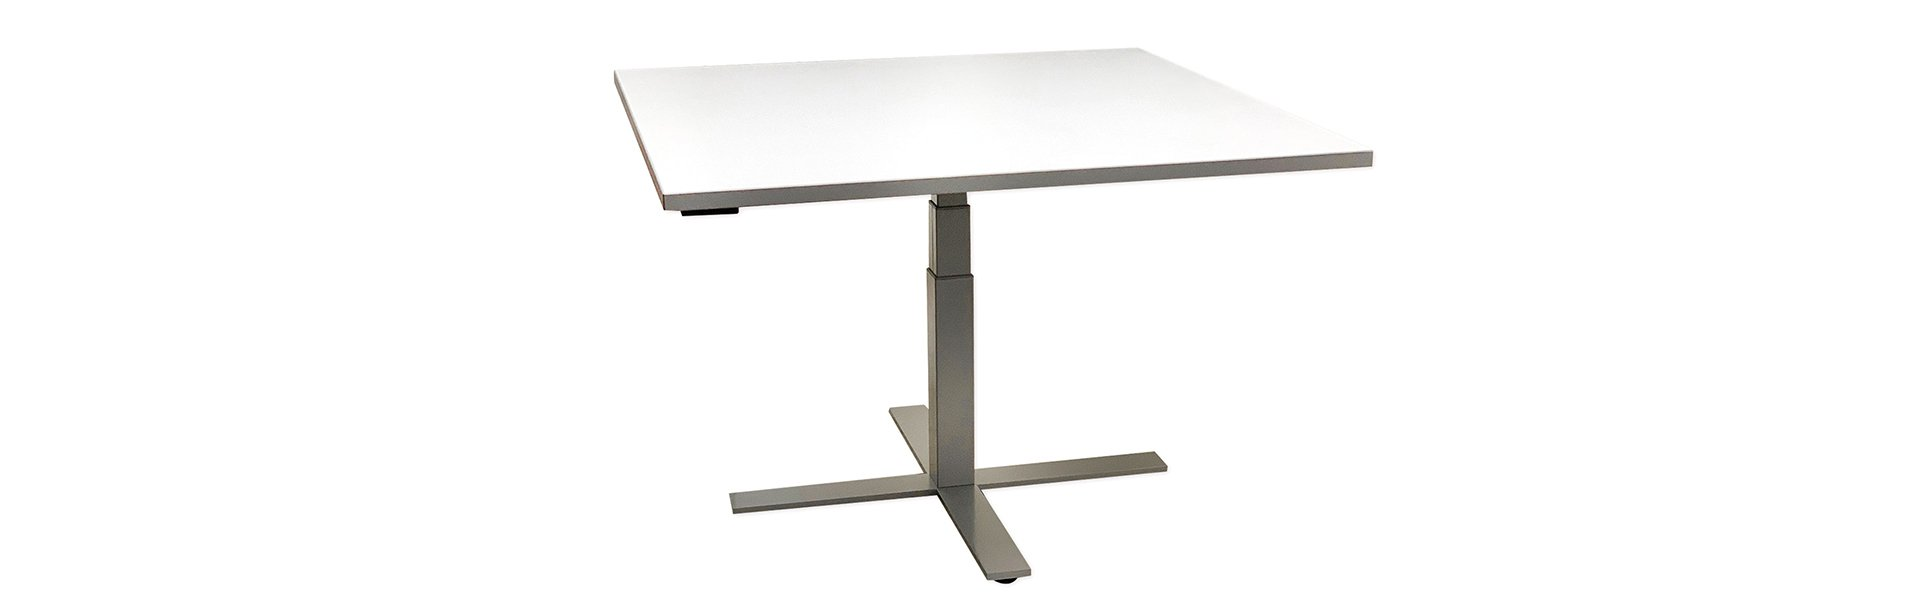 CFC Educational 667 Transformer Table